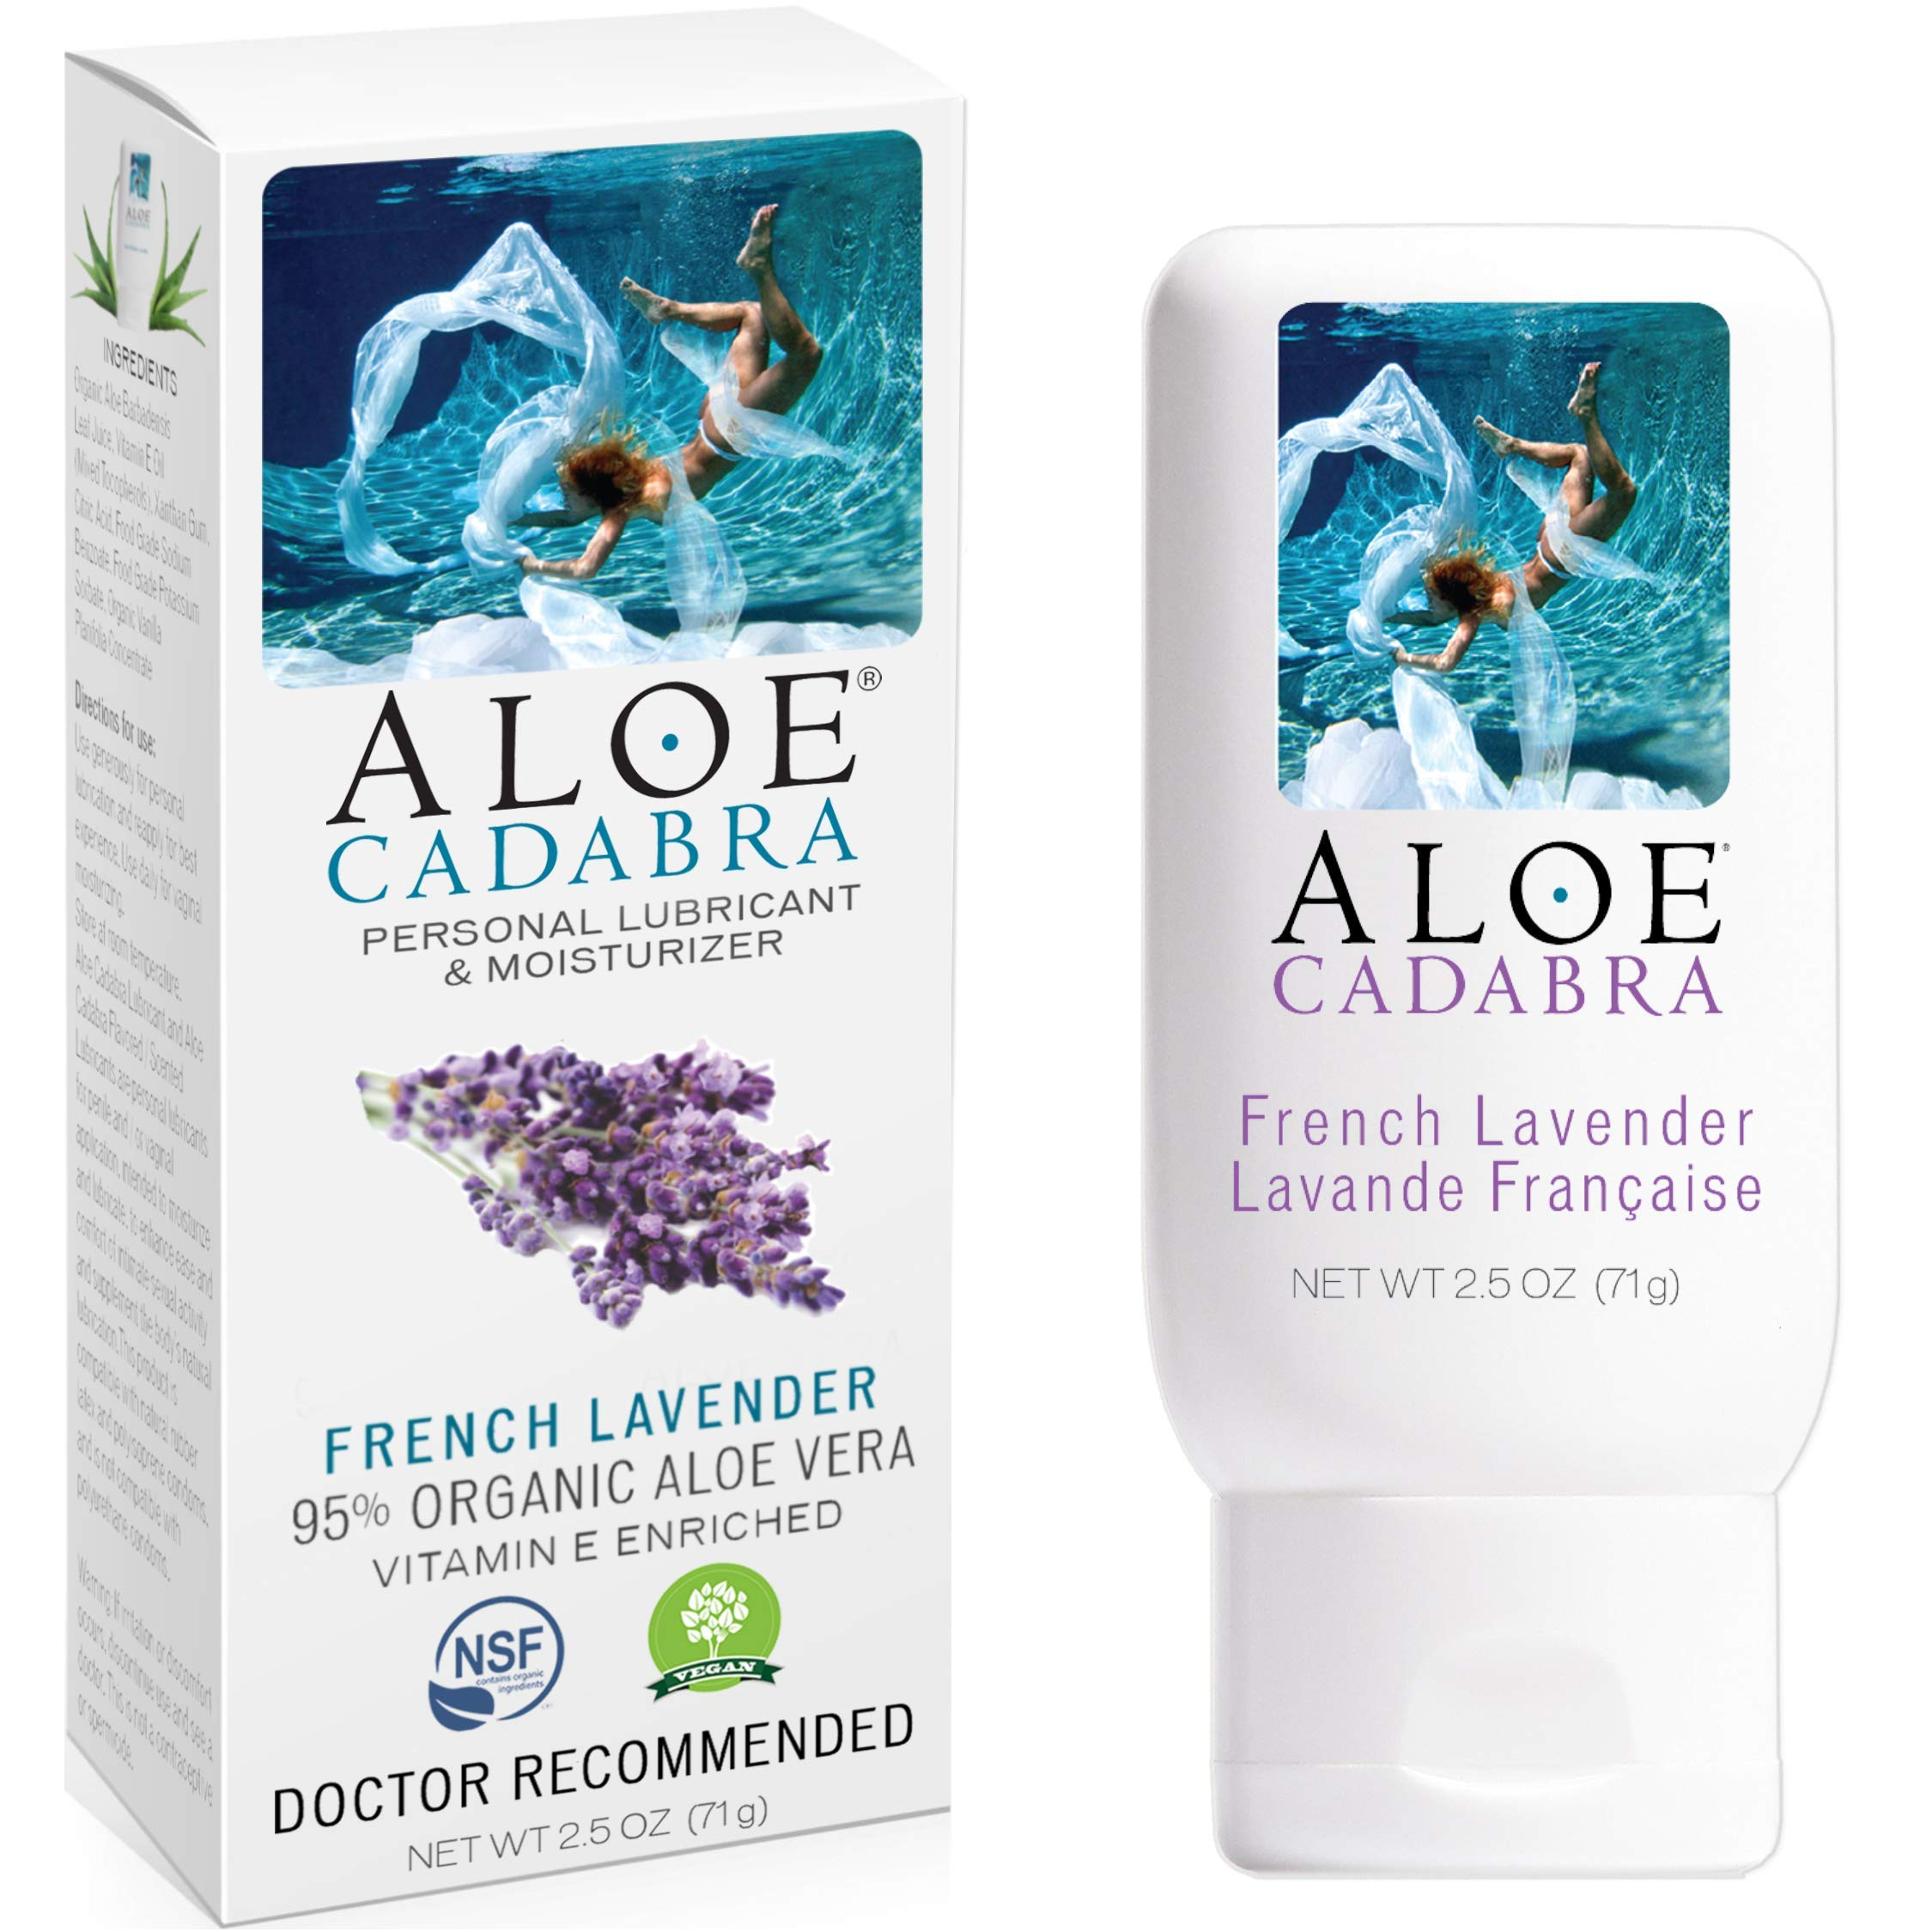 Aloe Cadabra Natural Personal Lubricant and Organic Vaginal Moisturizer for Men, Women & Couples - French Lavender, 2.5 Ounce